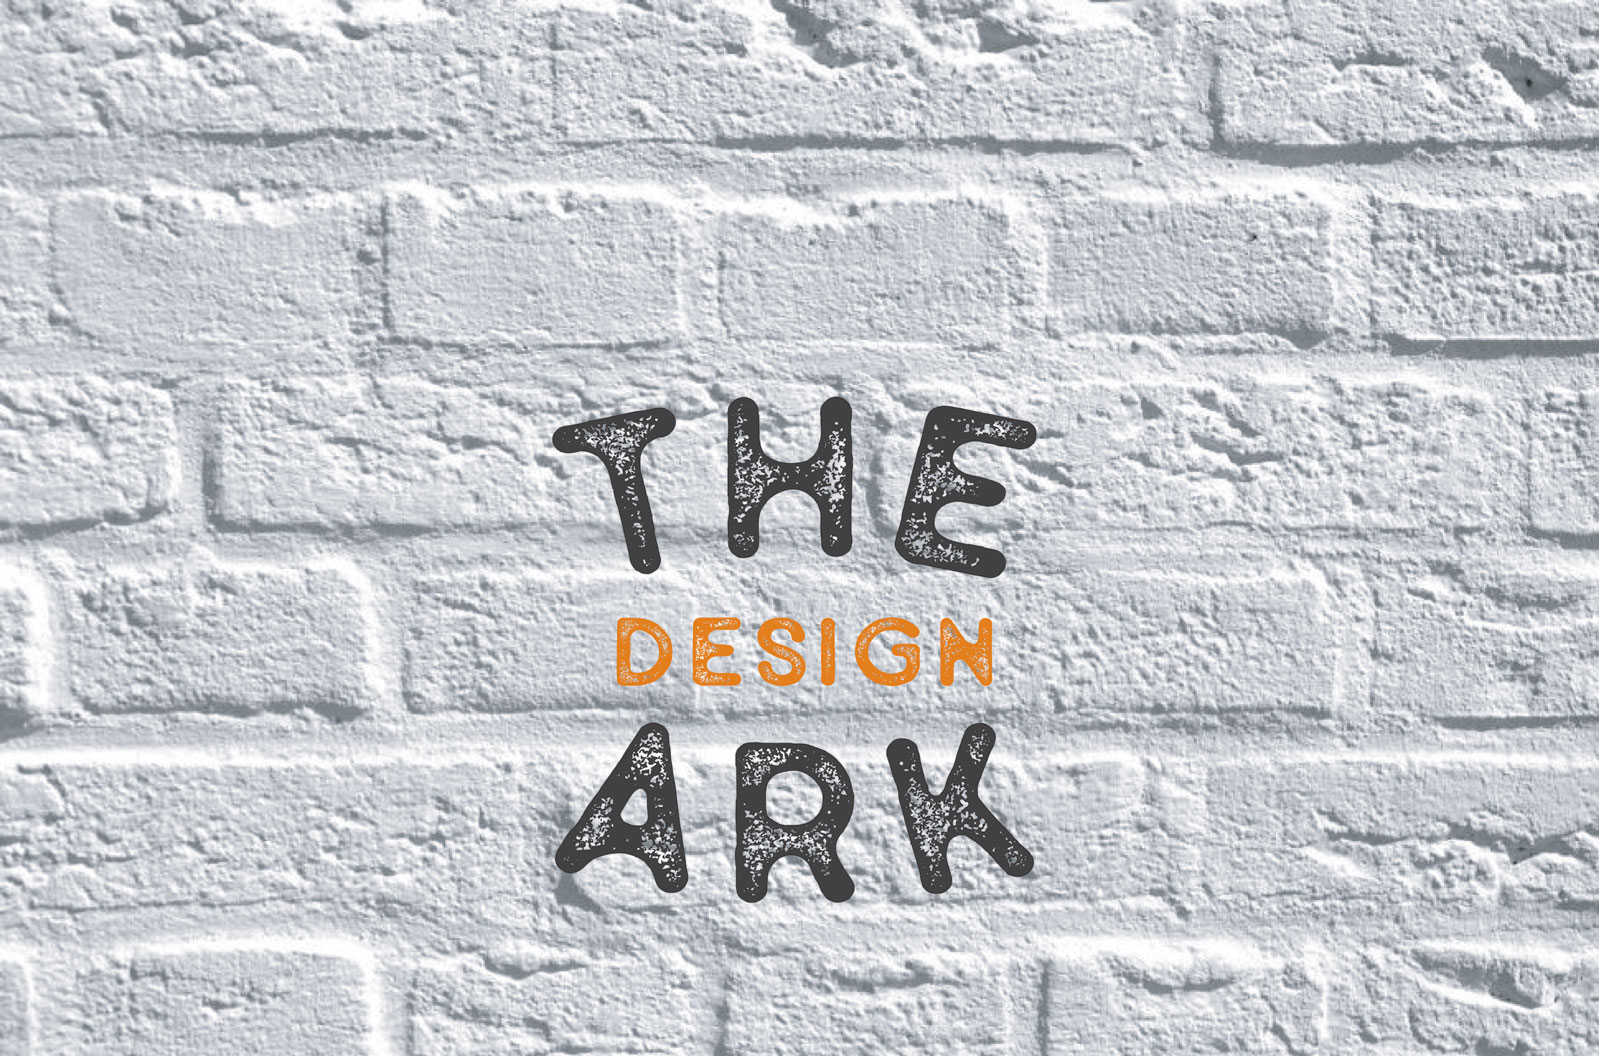 The Design Ark Image